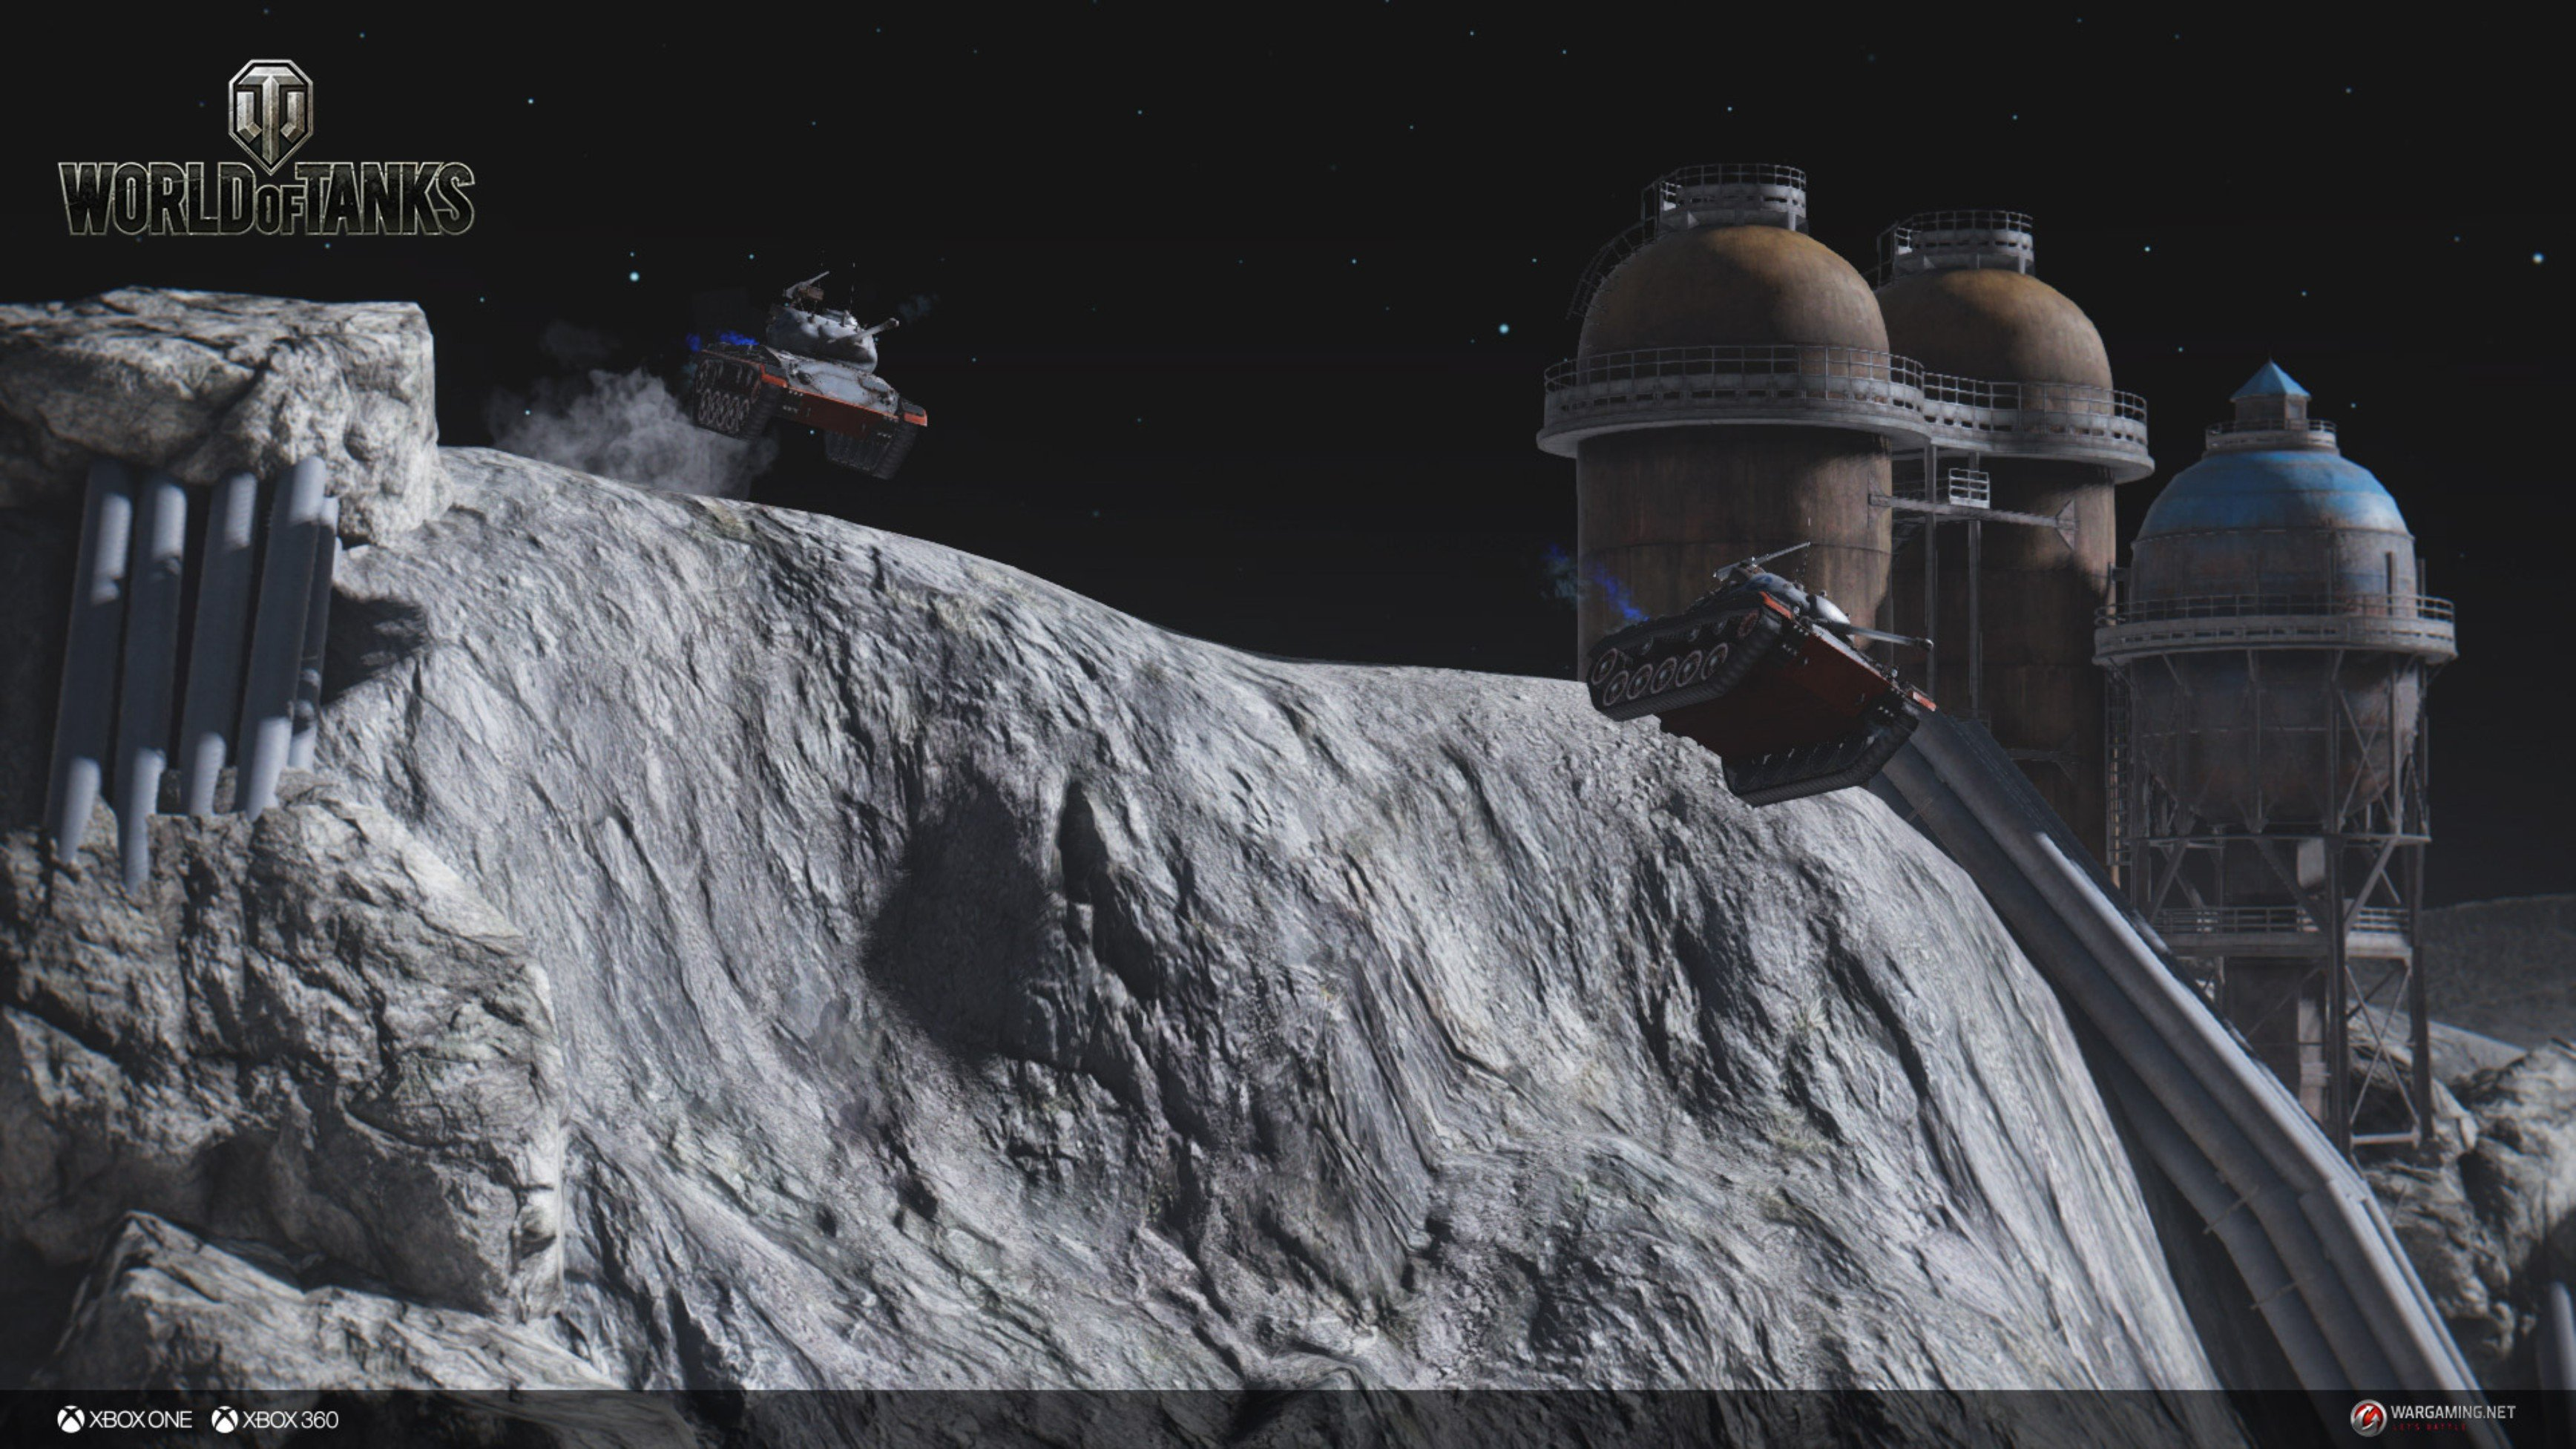 WoT_Console_Screens_Lunar_Mode_Image_02